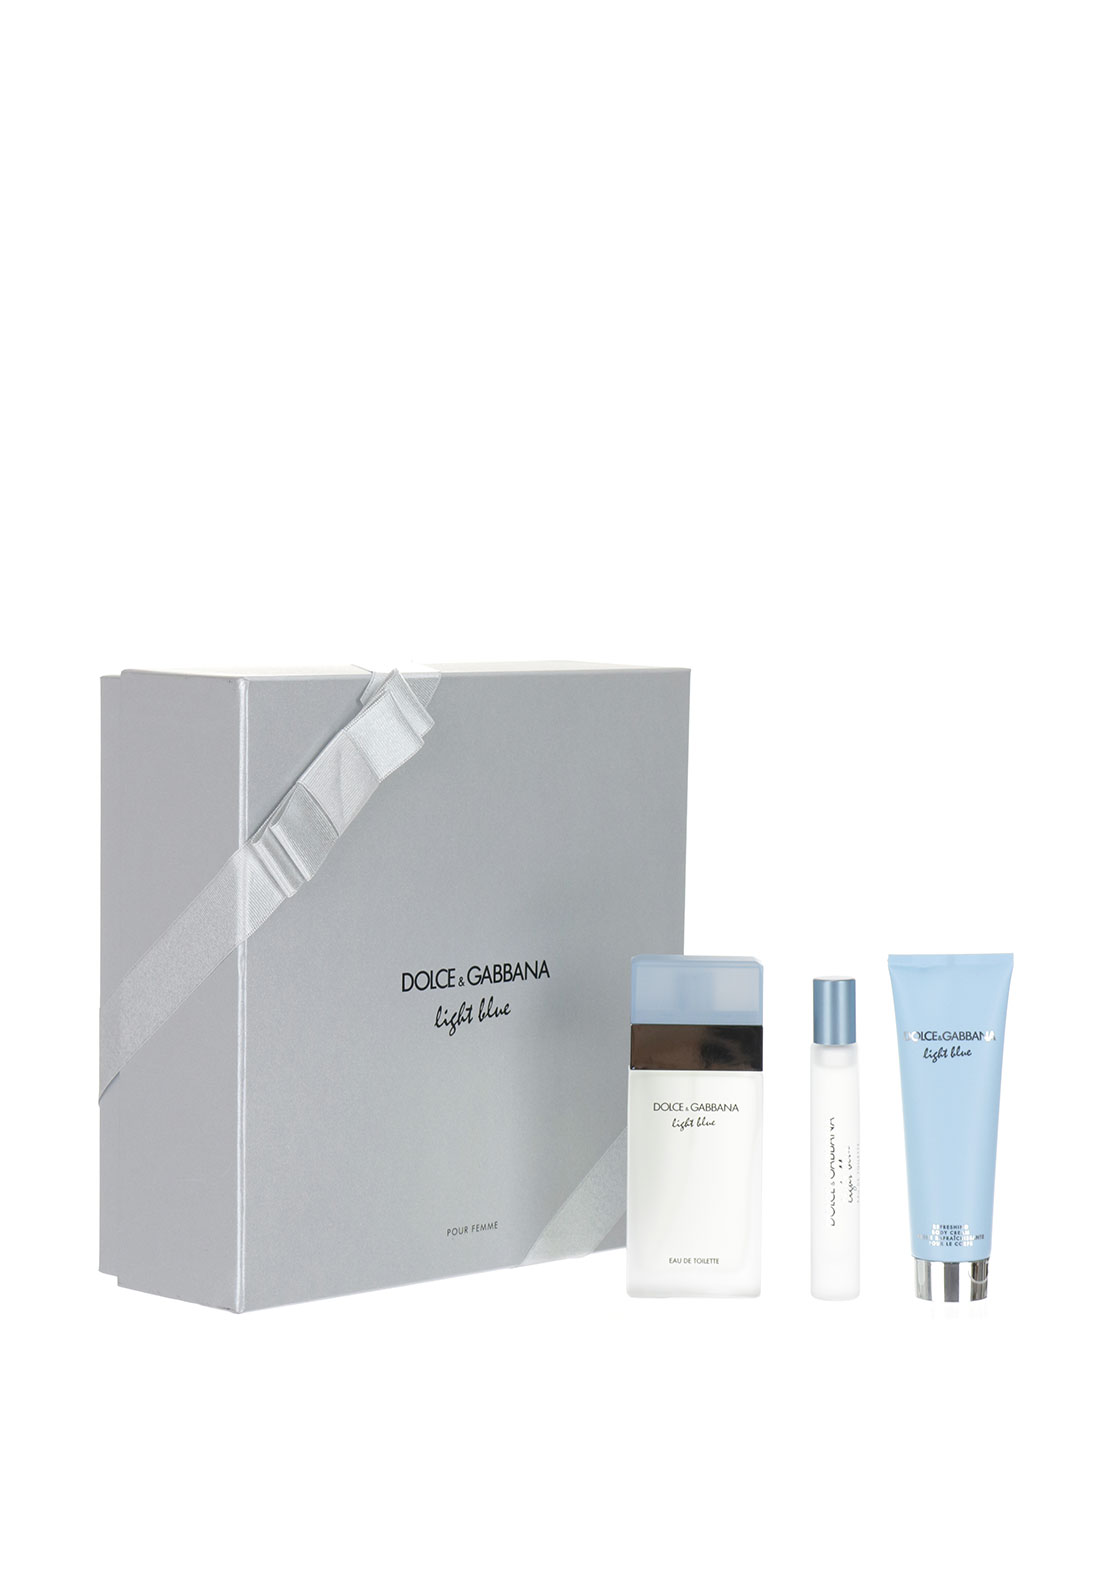 DOLCE & GABBANA Light Blue Gift Set for Her